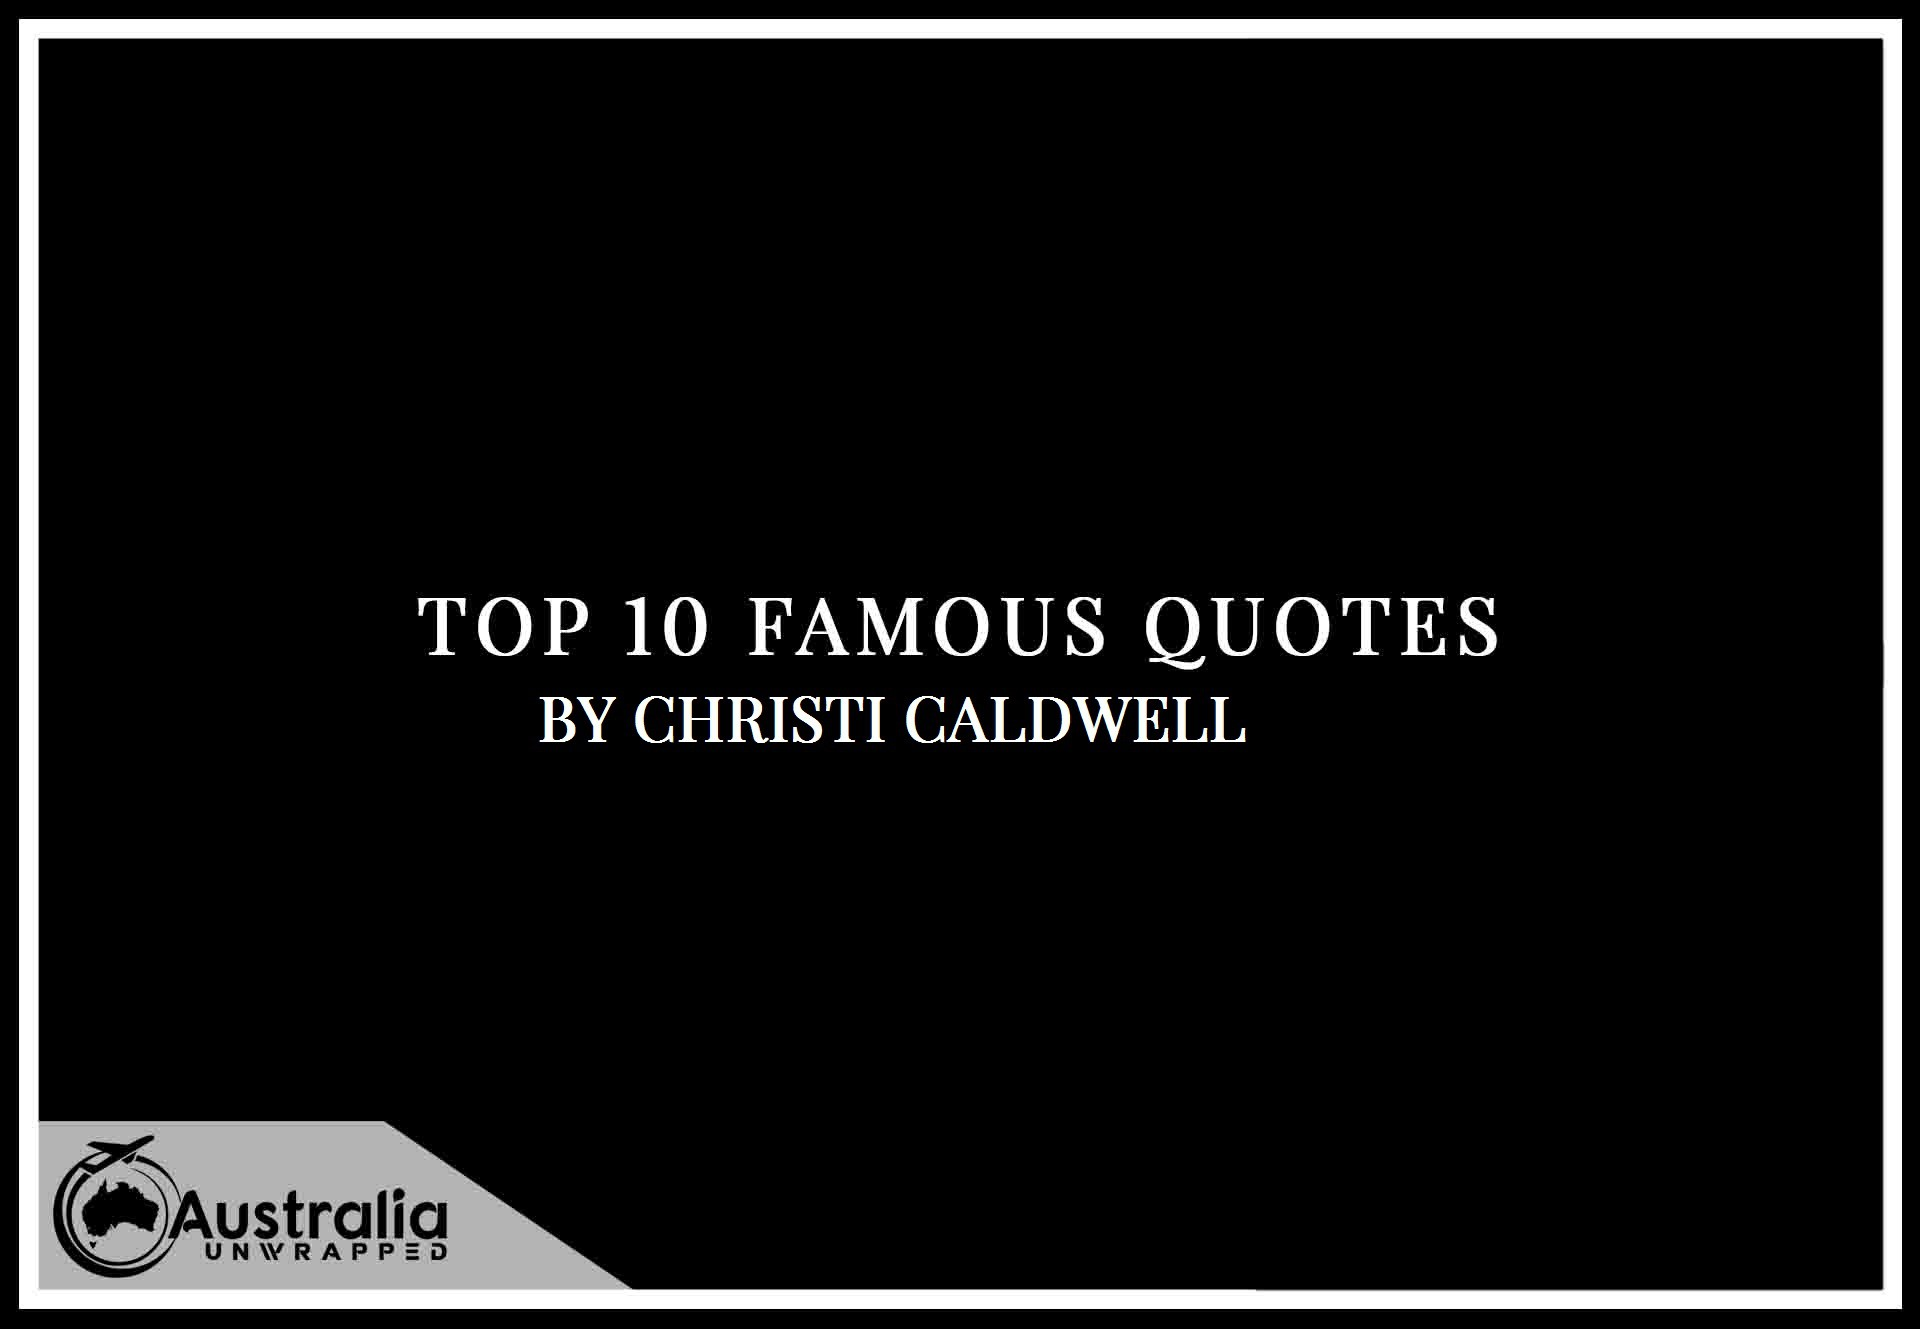 Christi Caldwell's Top 10 Popular and Famous Quotes